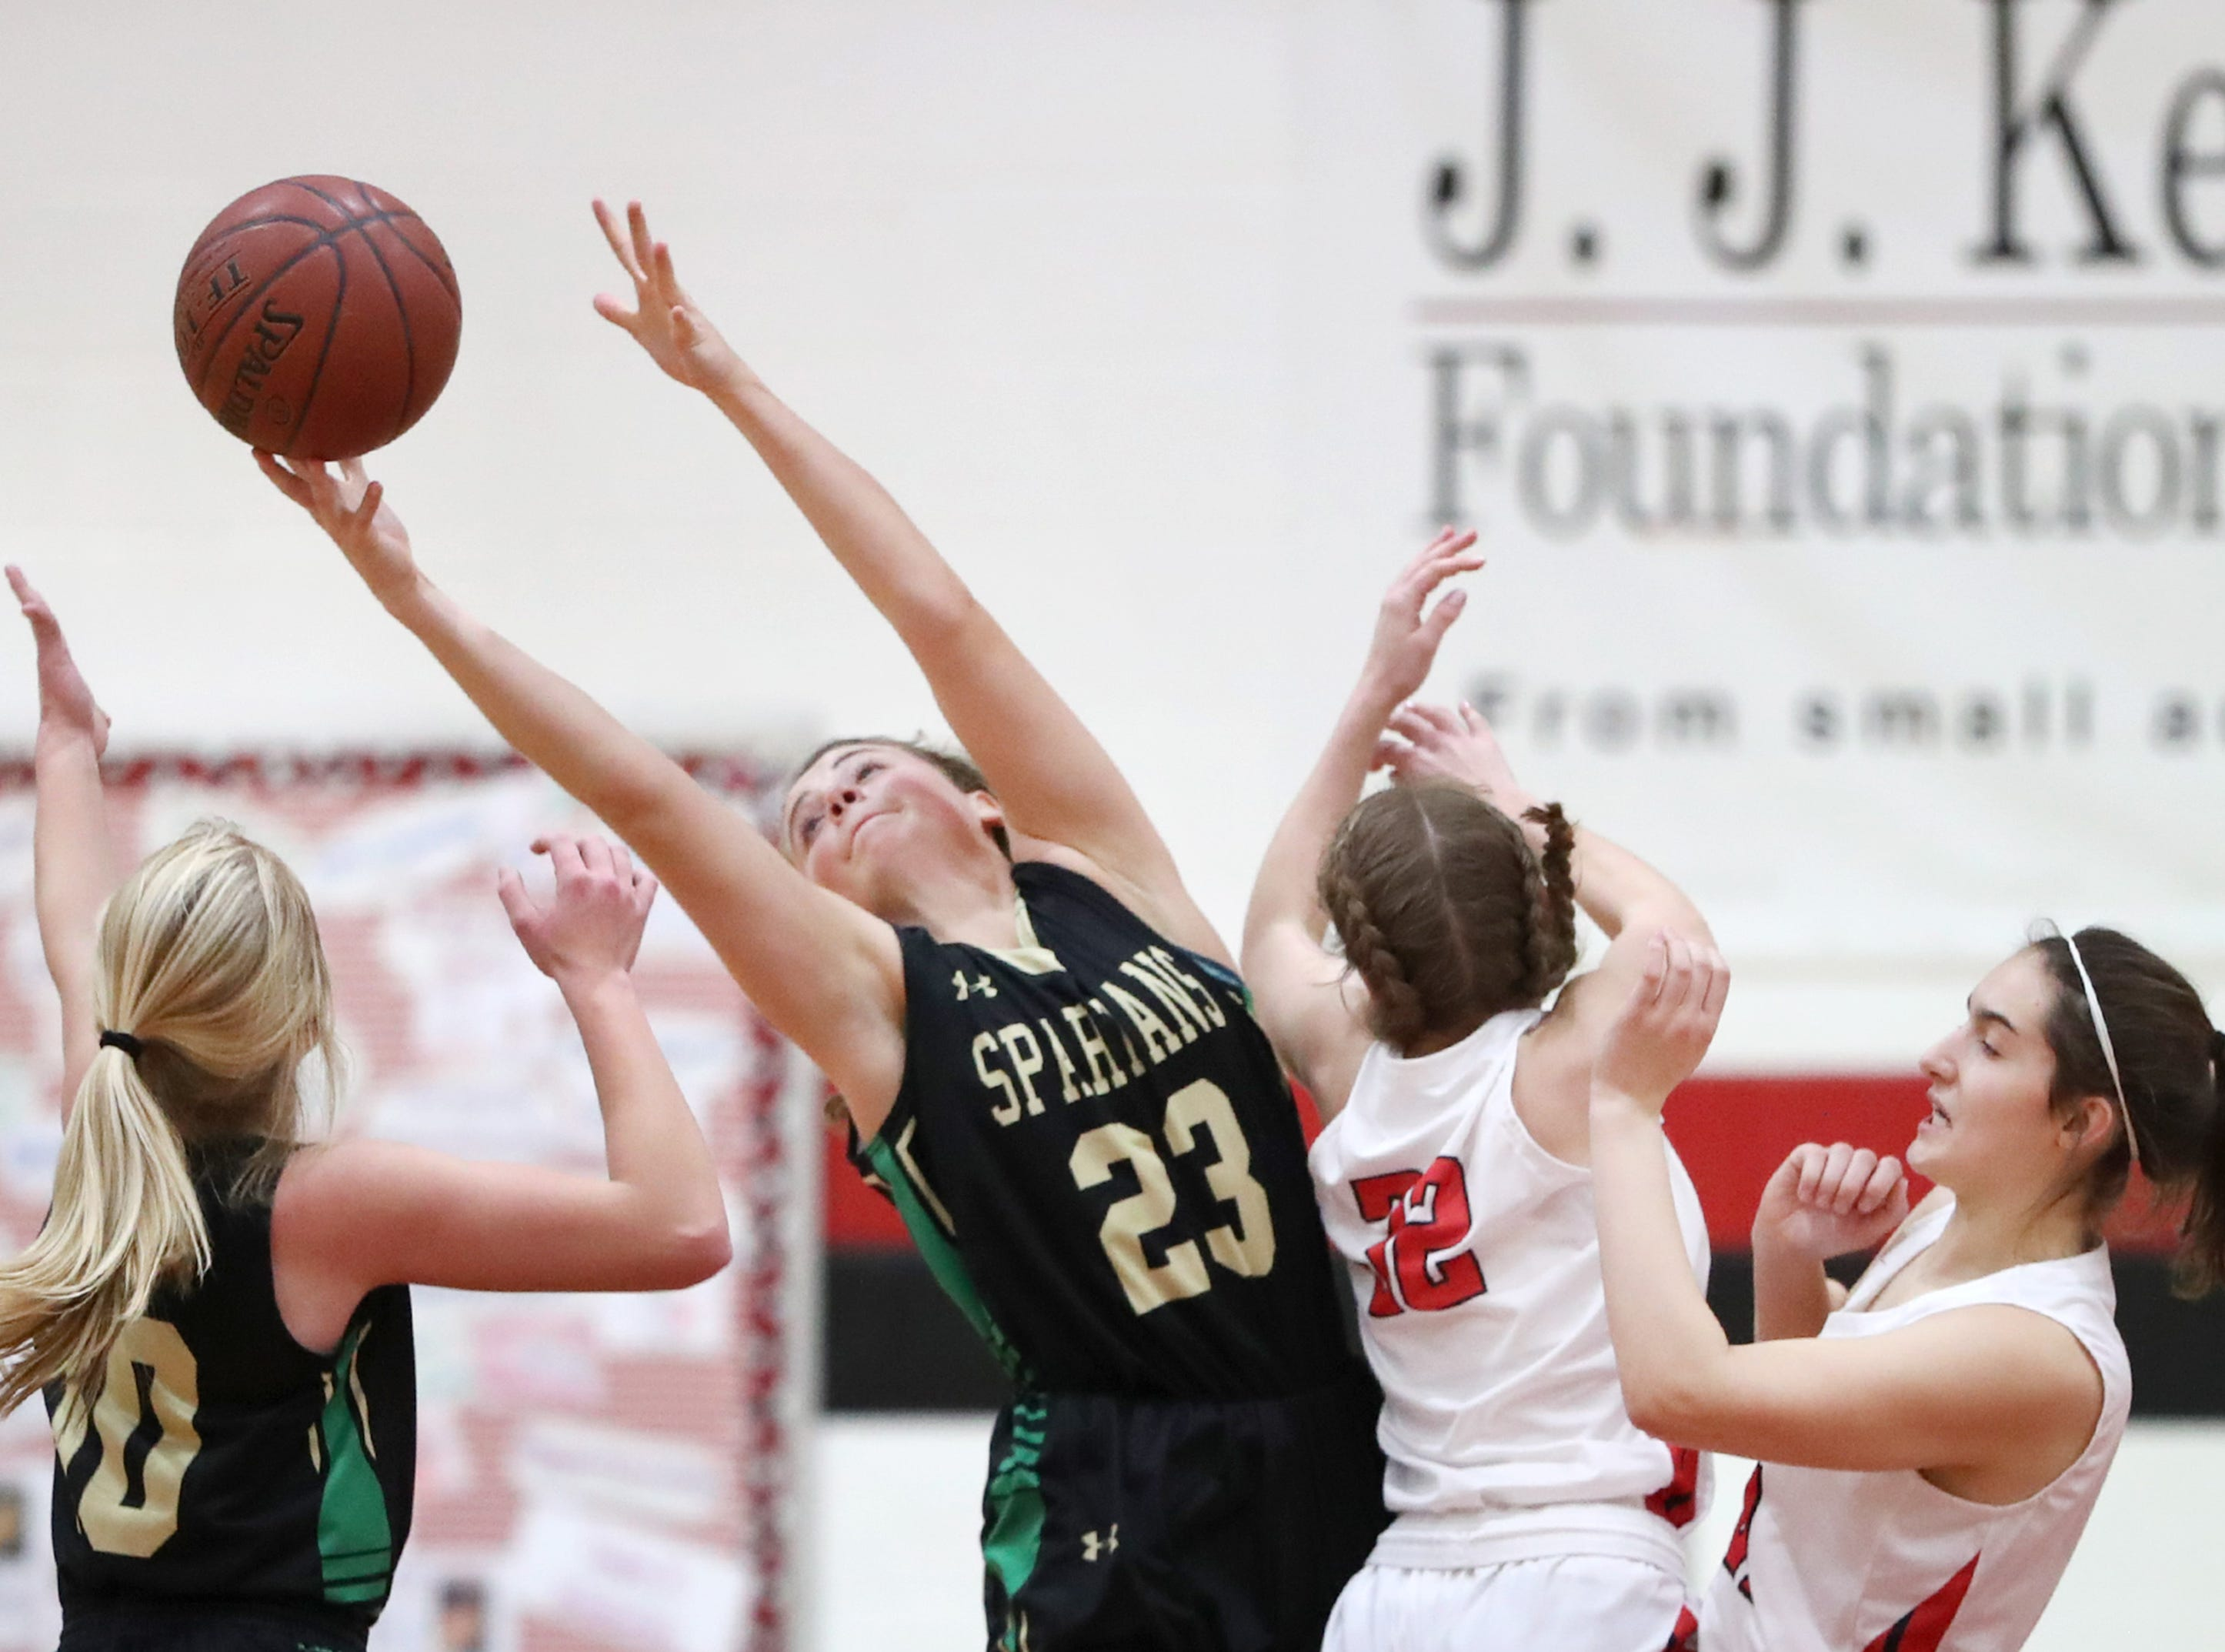 Oshkosh North High SchoolÕs Elle Lieder stretches for a rebound during their game against Neenah High School Friday, Jan. 18, 2019, in Neenah, Wis.